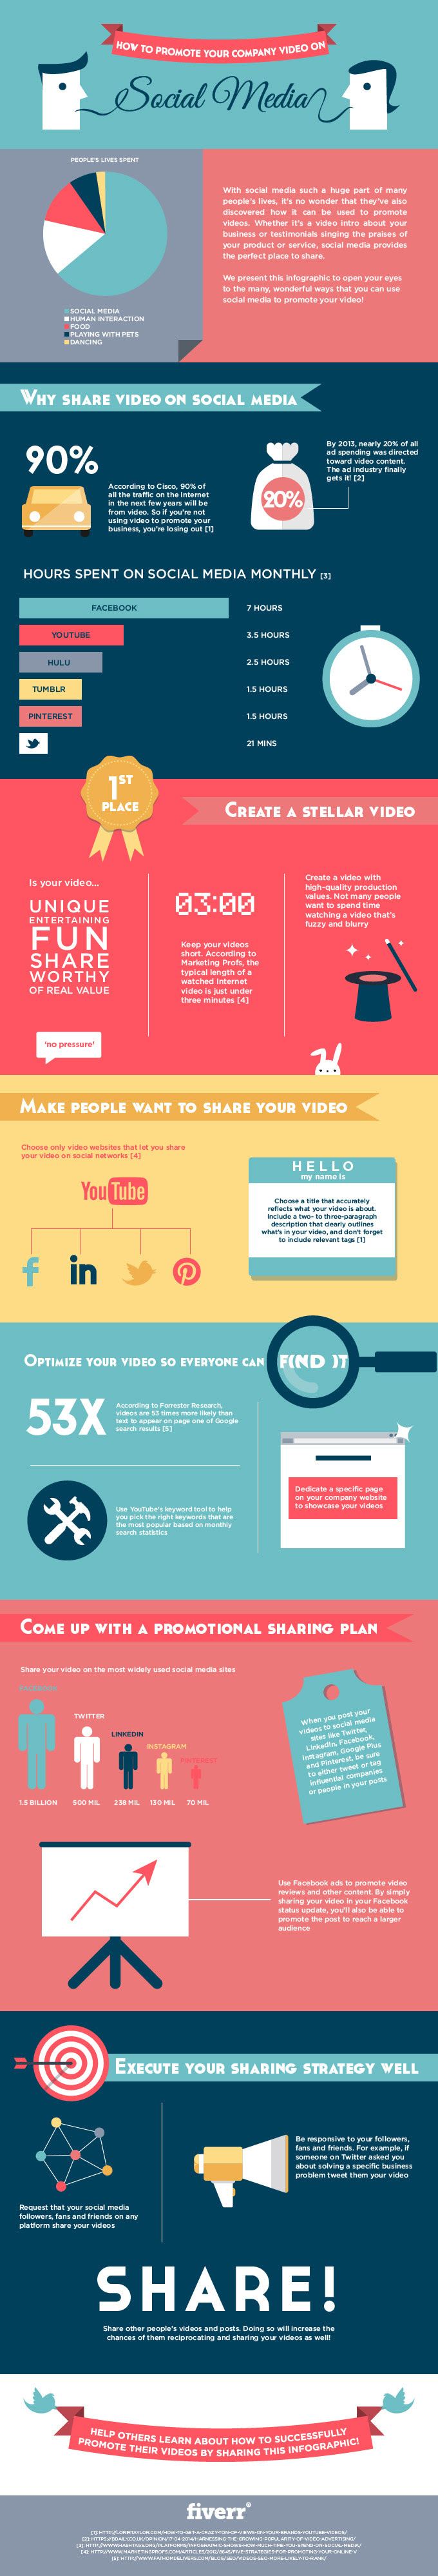 How to Promote Your Company Video on Social Media - #vine